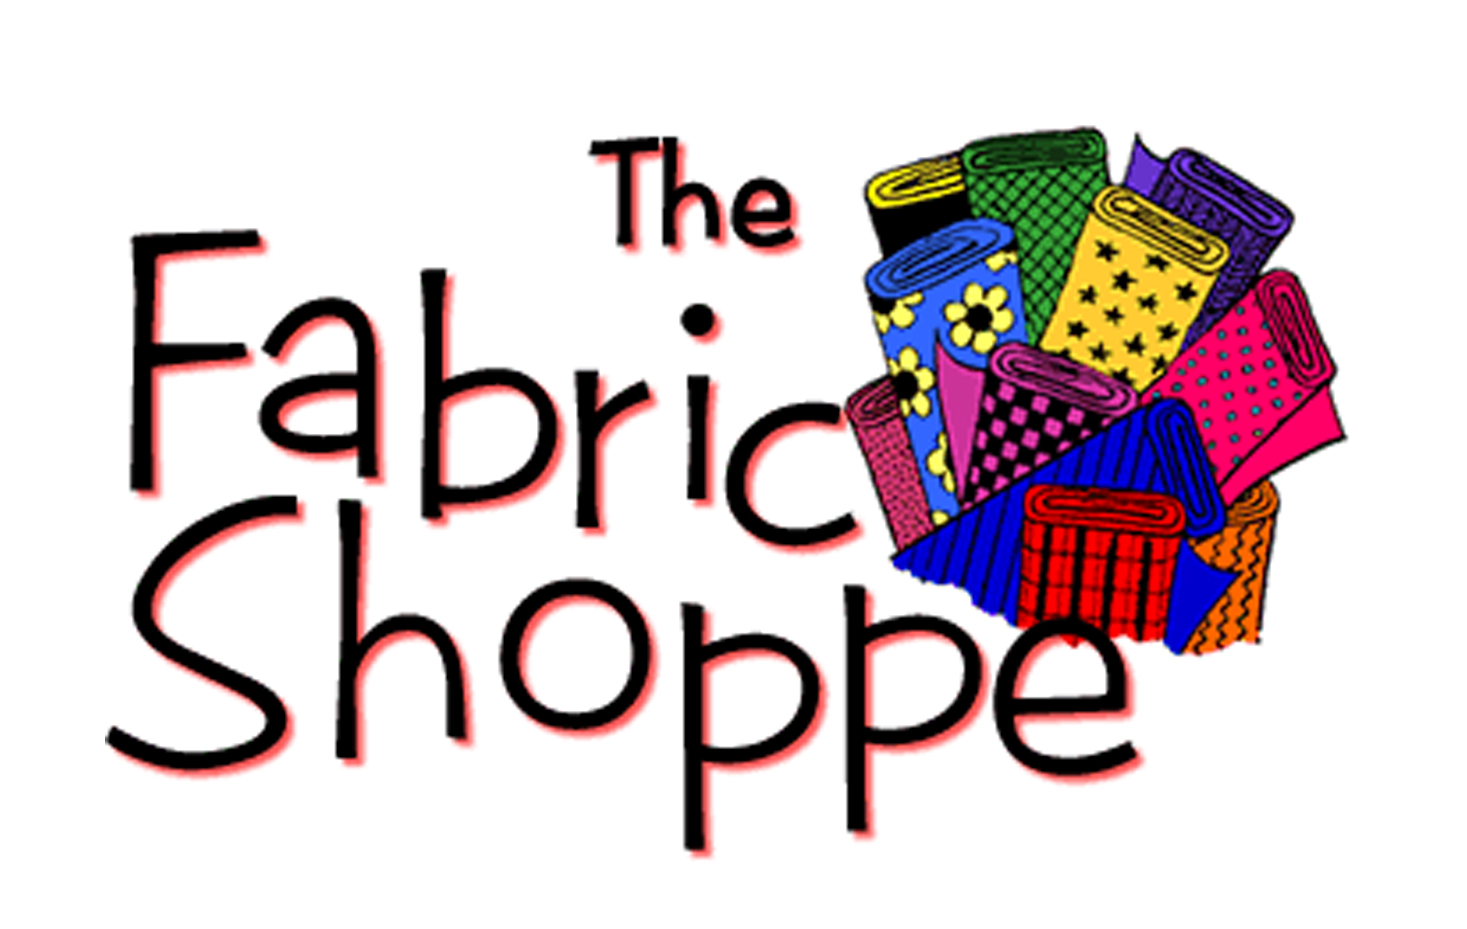 The Fabric Shoppe